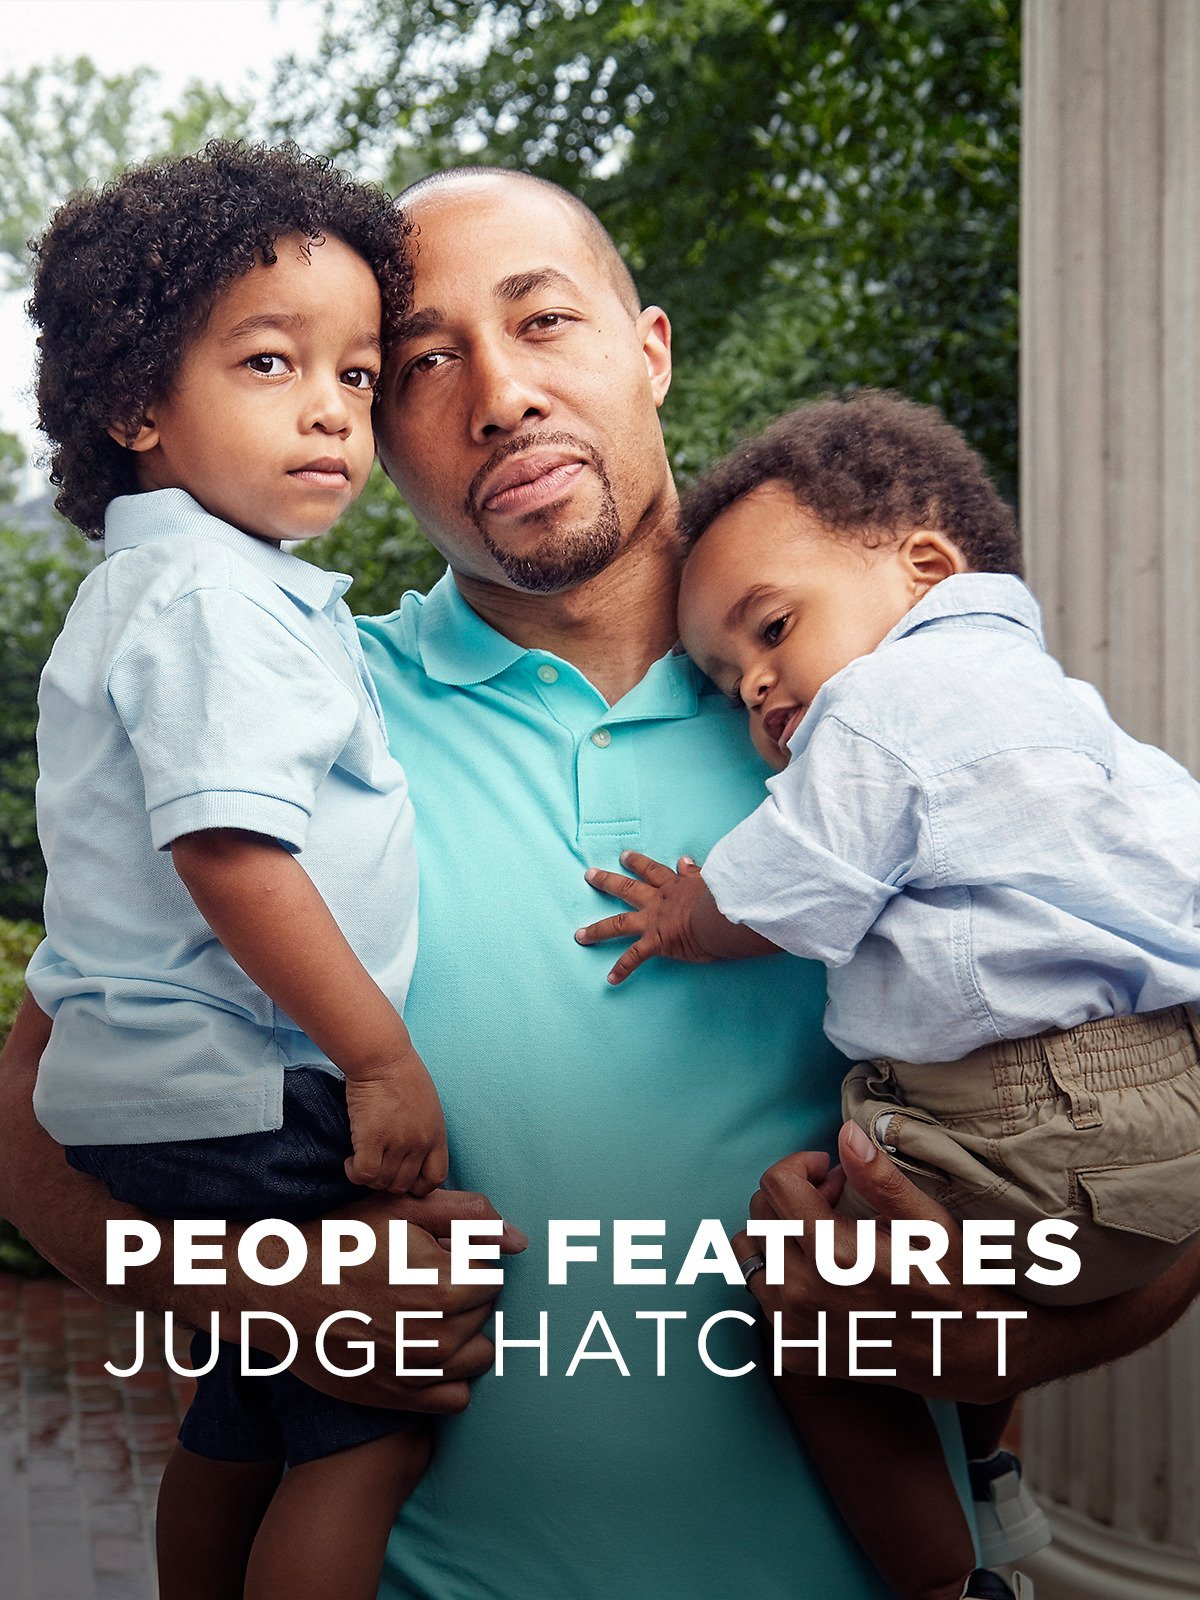 People Features: Judge Hatchett